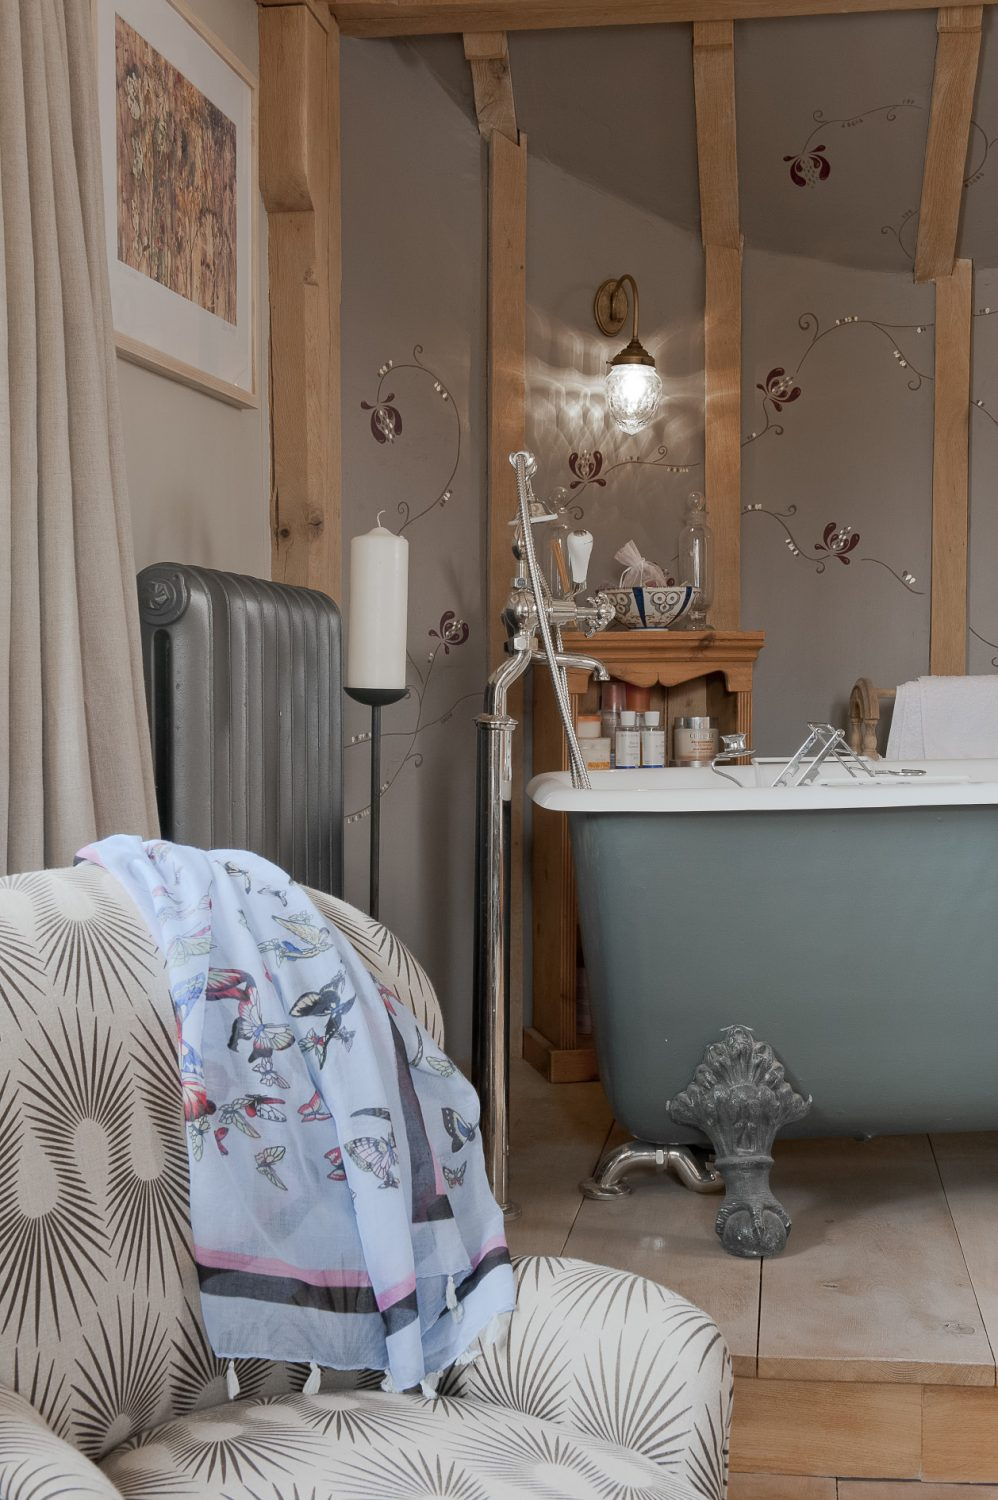 In Moyna and Richard's room a handsome rolltop bath is mounted on a dais in one corner